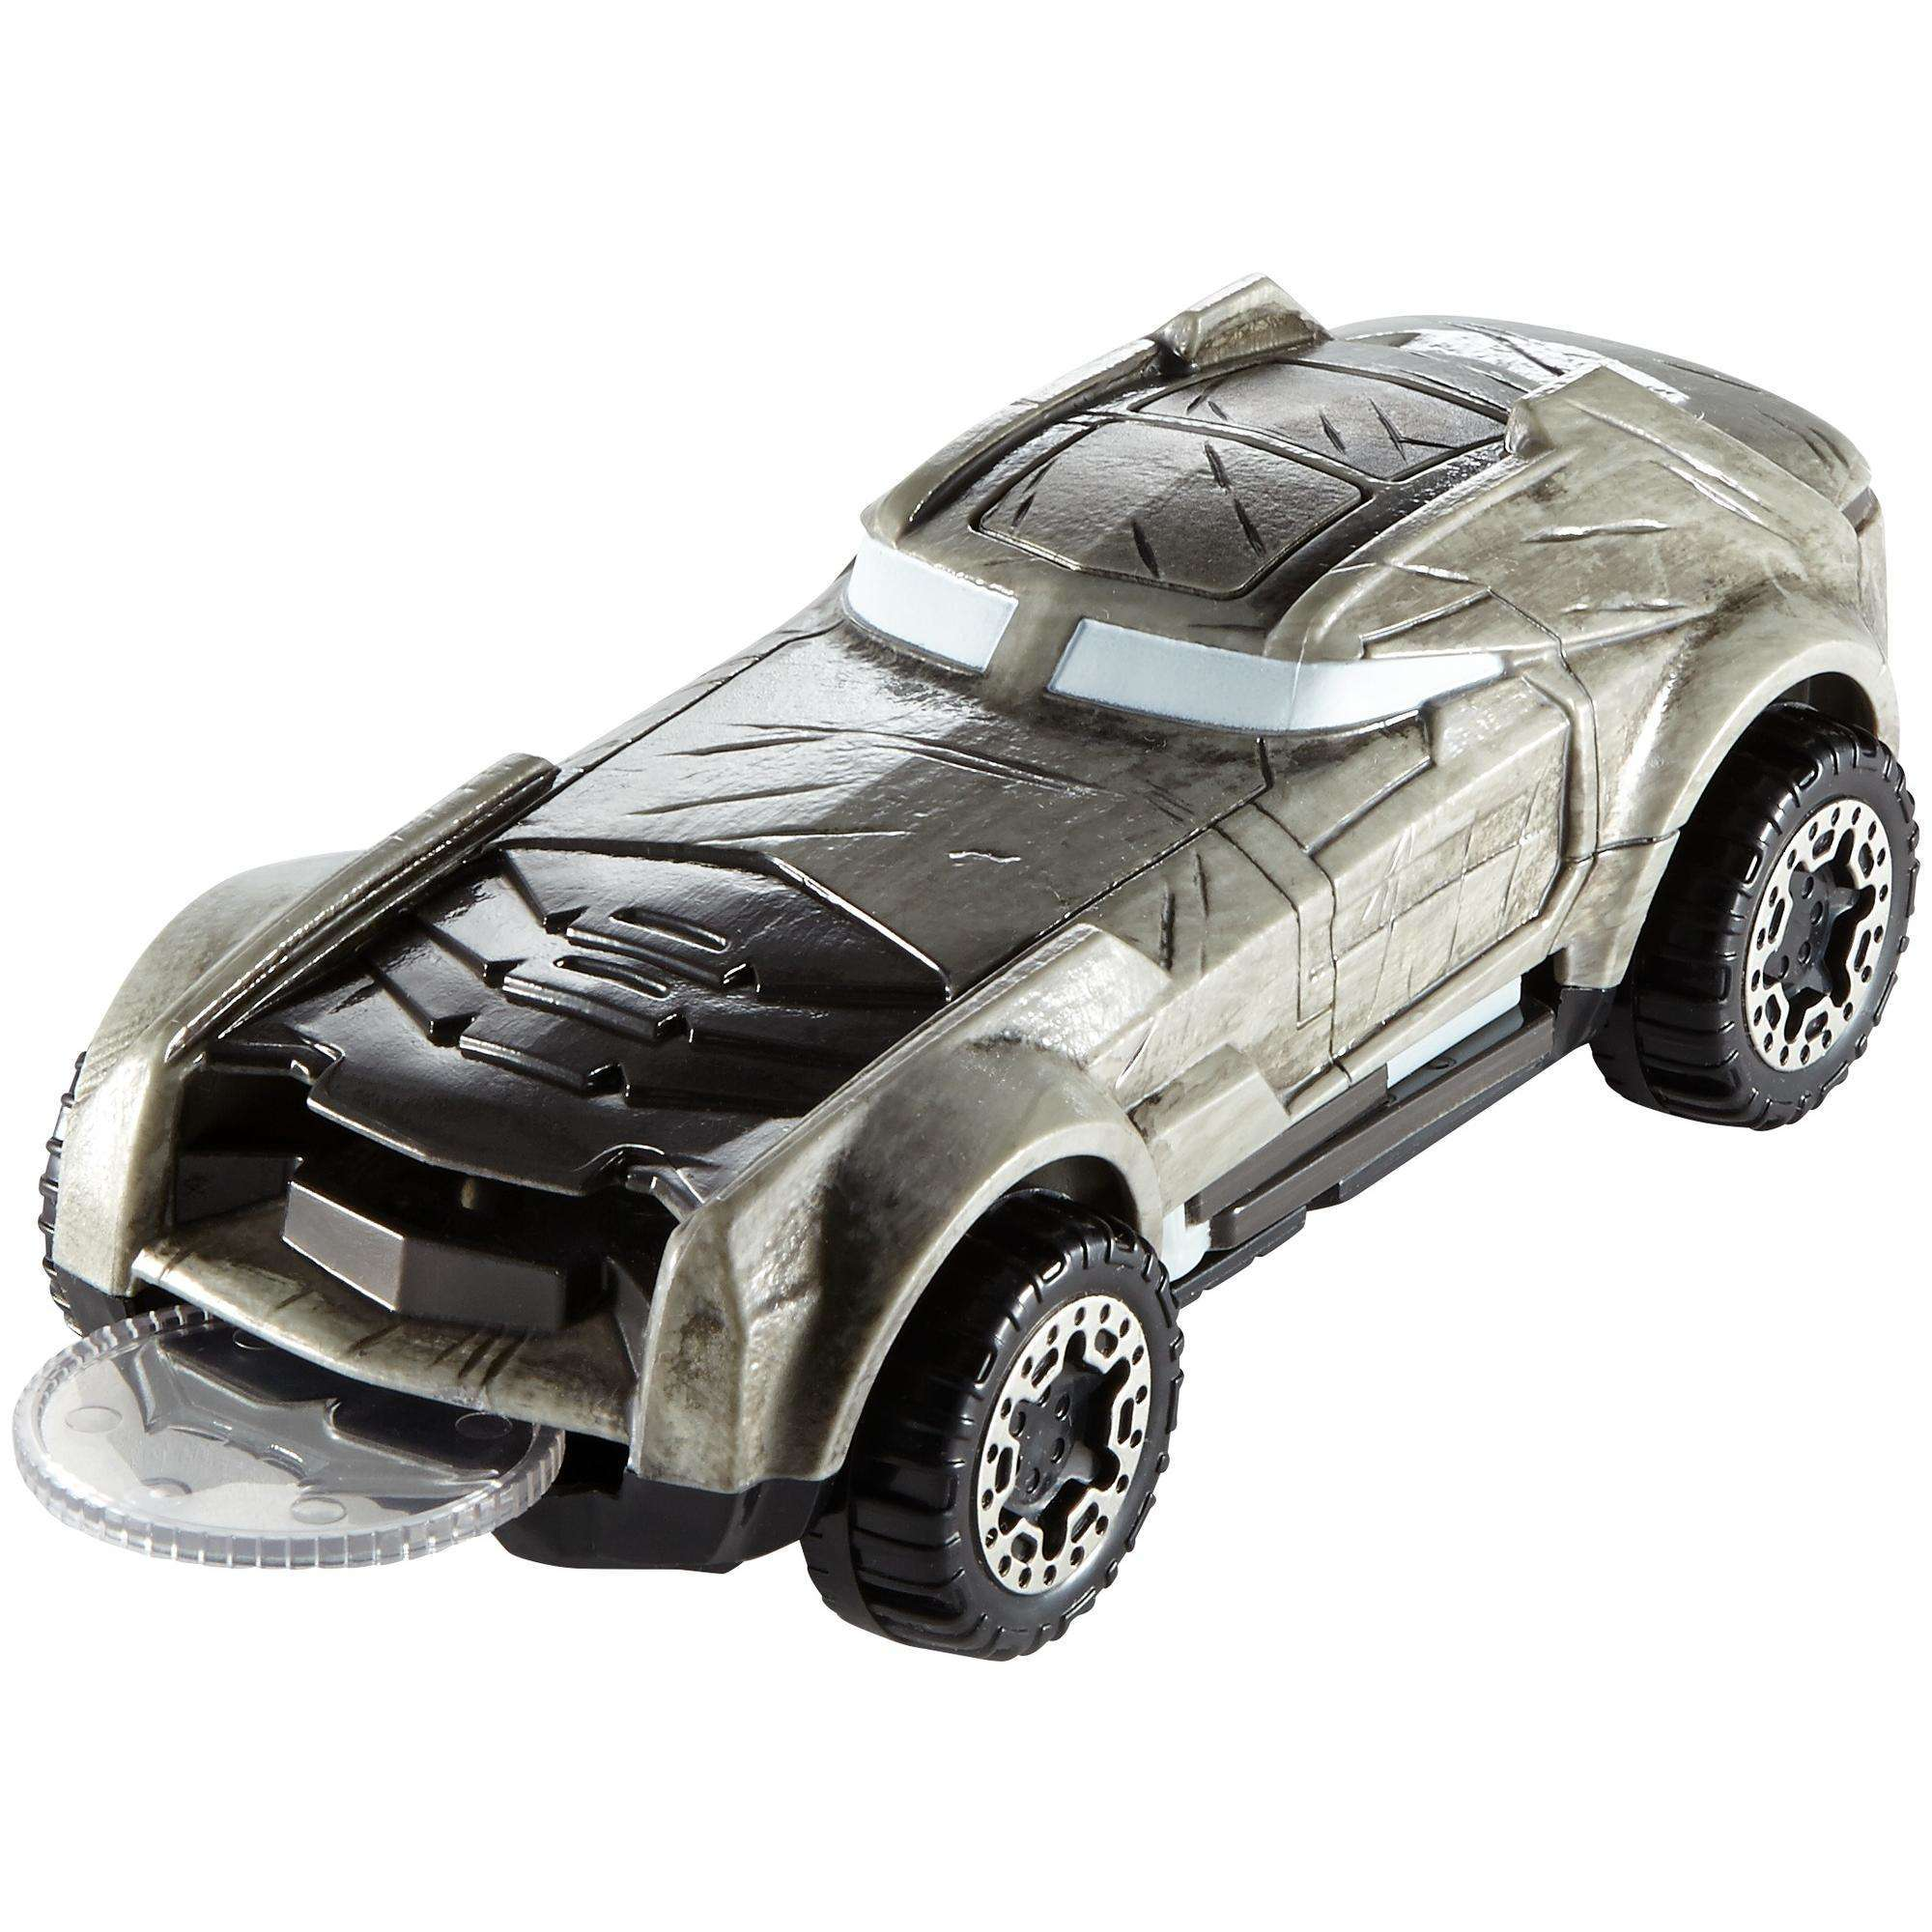 Hot Wheels DC Universe Armored Batman Deluxe Vehicle by Mattel